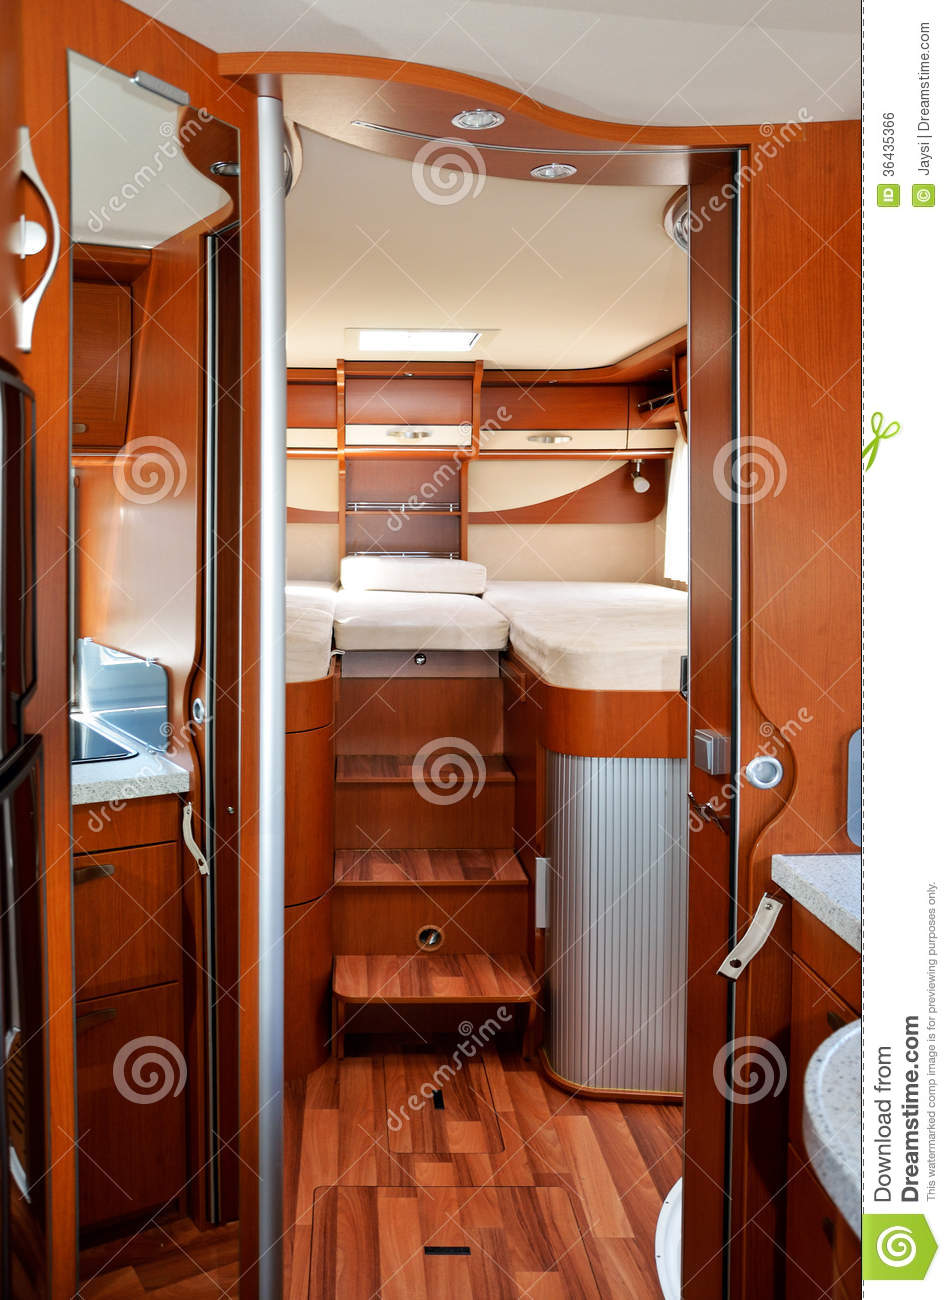 int rieur du campeur rv motorhome caravane image libre de droits image 36435366. Black Bedroom Furniture Sets. Home Design Ideas